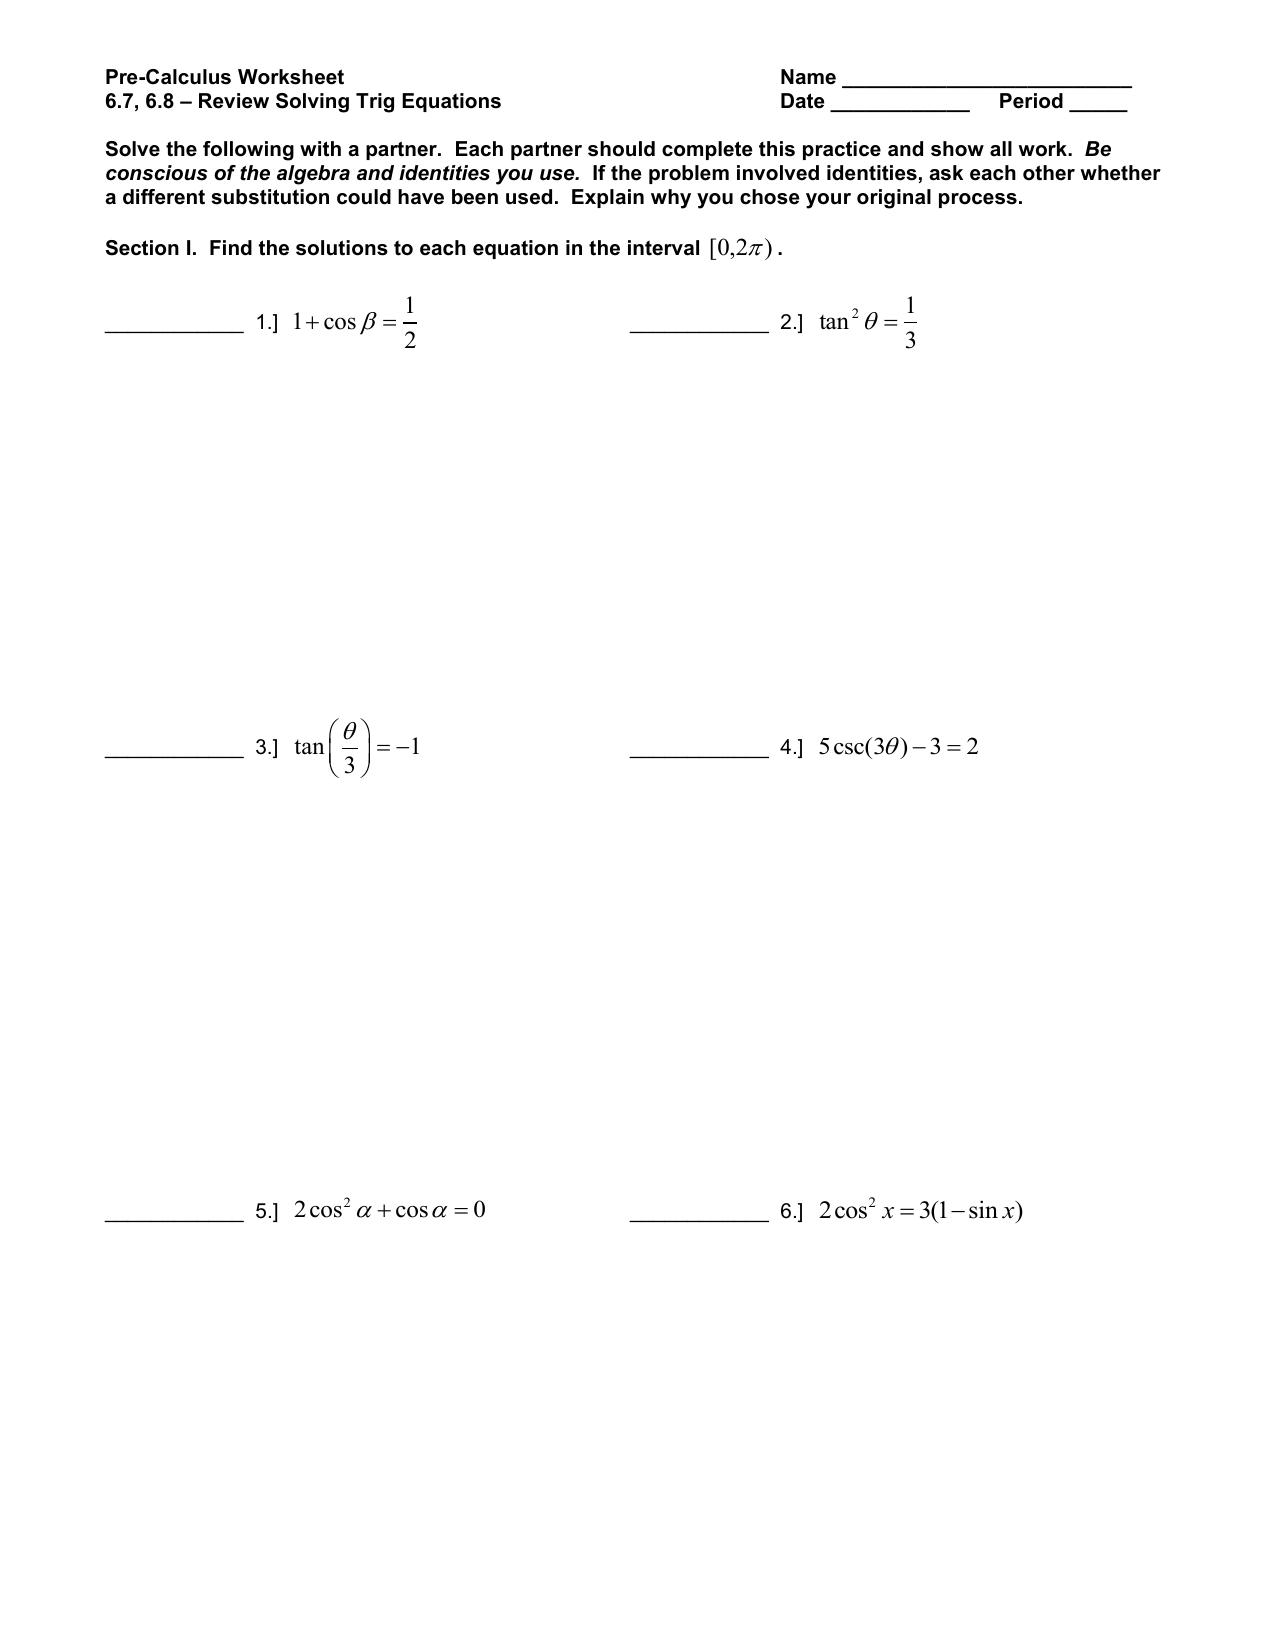 Solving Trig Equations Worksheet With Answers Math Worksheet Solving furthermore Trig Puzzle   roybot also  additionally Solving Trigonometric Equations Worksheet together with Pre Calculus Worksheet furthermore  together with 25 New solve Trig Equations Worksheet   Valentines Day Worksheet also Equation  We Could Take The Arccosine Ofboth Sides Of The Equation together with Lsn 11 2  Solving Trig Equations furthermore  besides Solving Trig Equations Worksheet – Fronteirastral additionally 5 3 Solving Trig Equations Practice Worksheet 1 Precalculus additionally Trig Prove each ideny  1   1   secx   tanx SInX       secx additionally Solving Trig Equations Worksheet Answers Math Practice Test likewise Solving Trigonometric Equations Worksheet 18 Unique Trig Worksheet likewise Trigonometric Equations Worksheet Unique solving Trigonometric. on solving simple trig equations worksheet